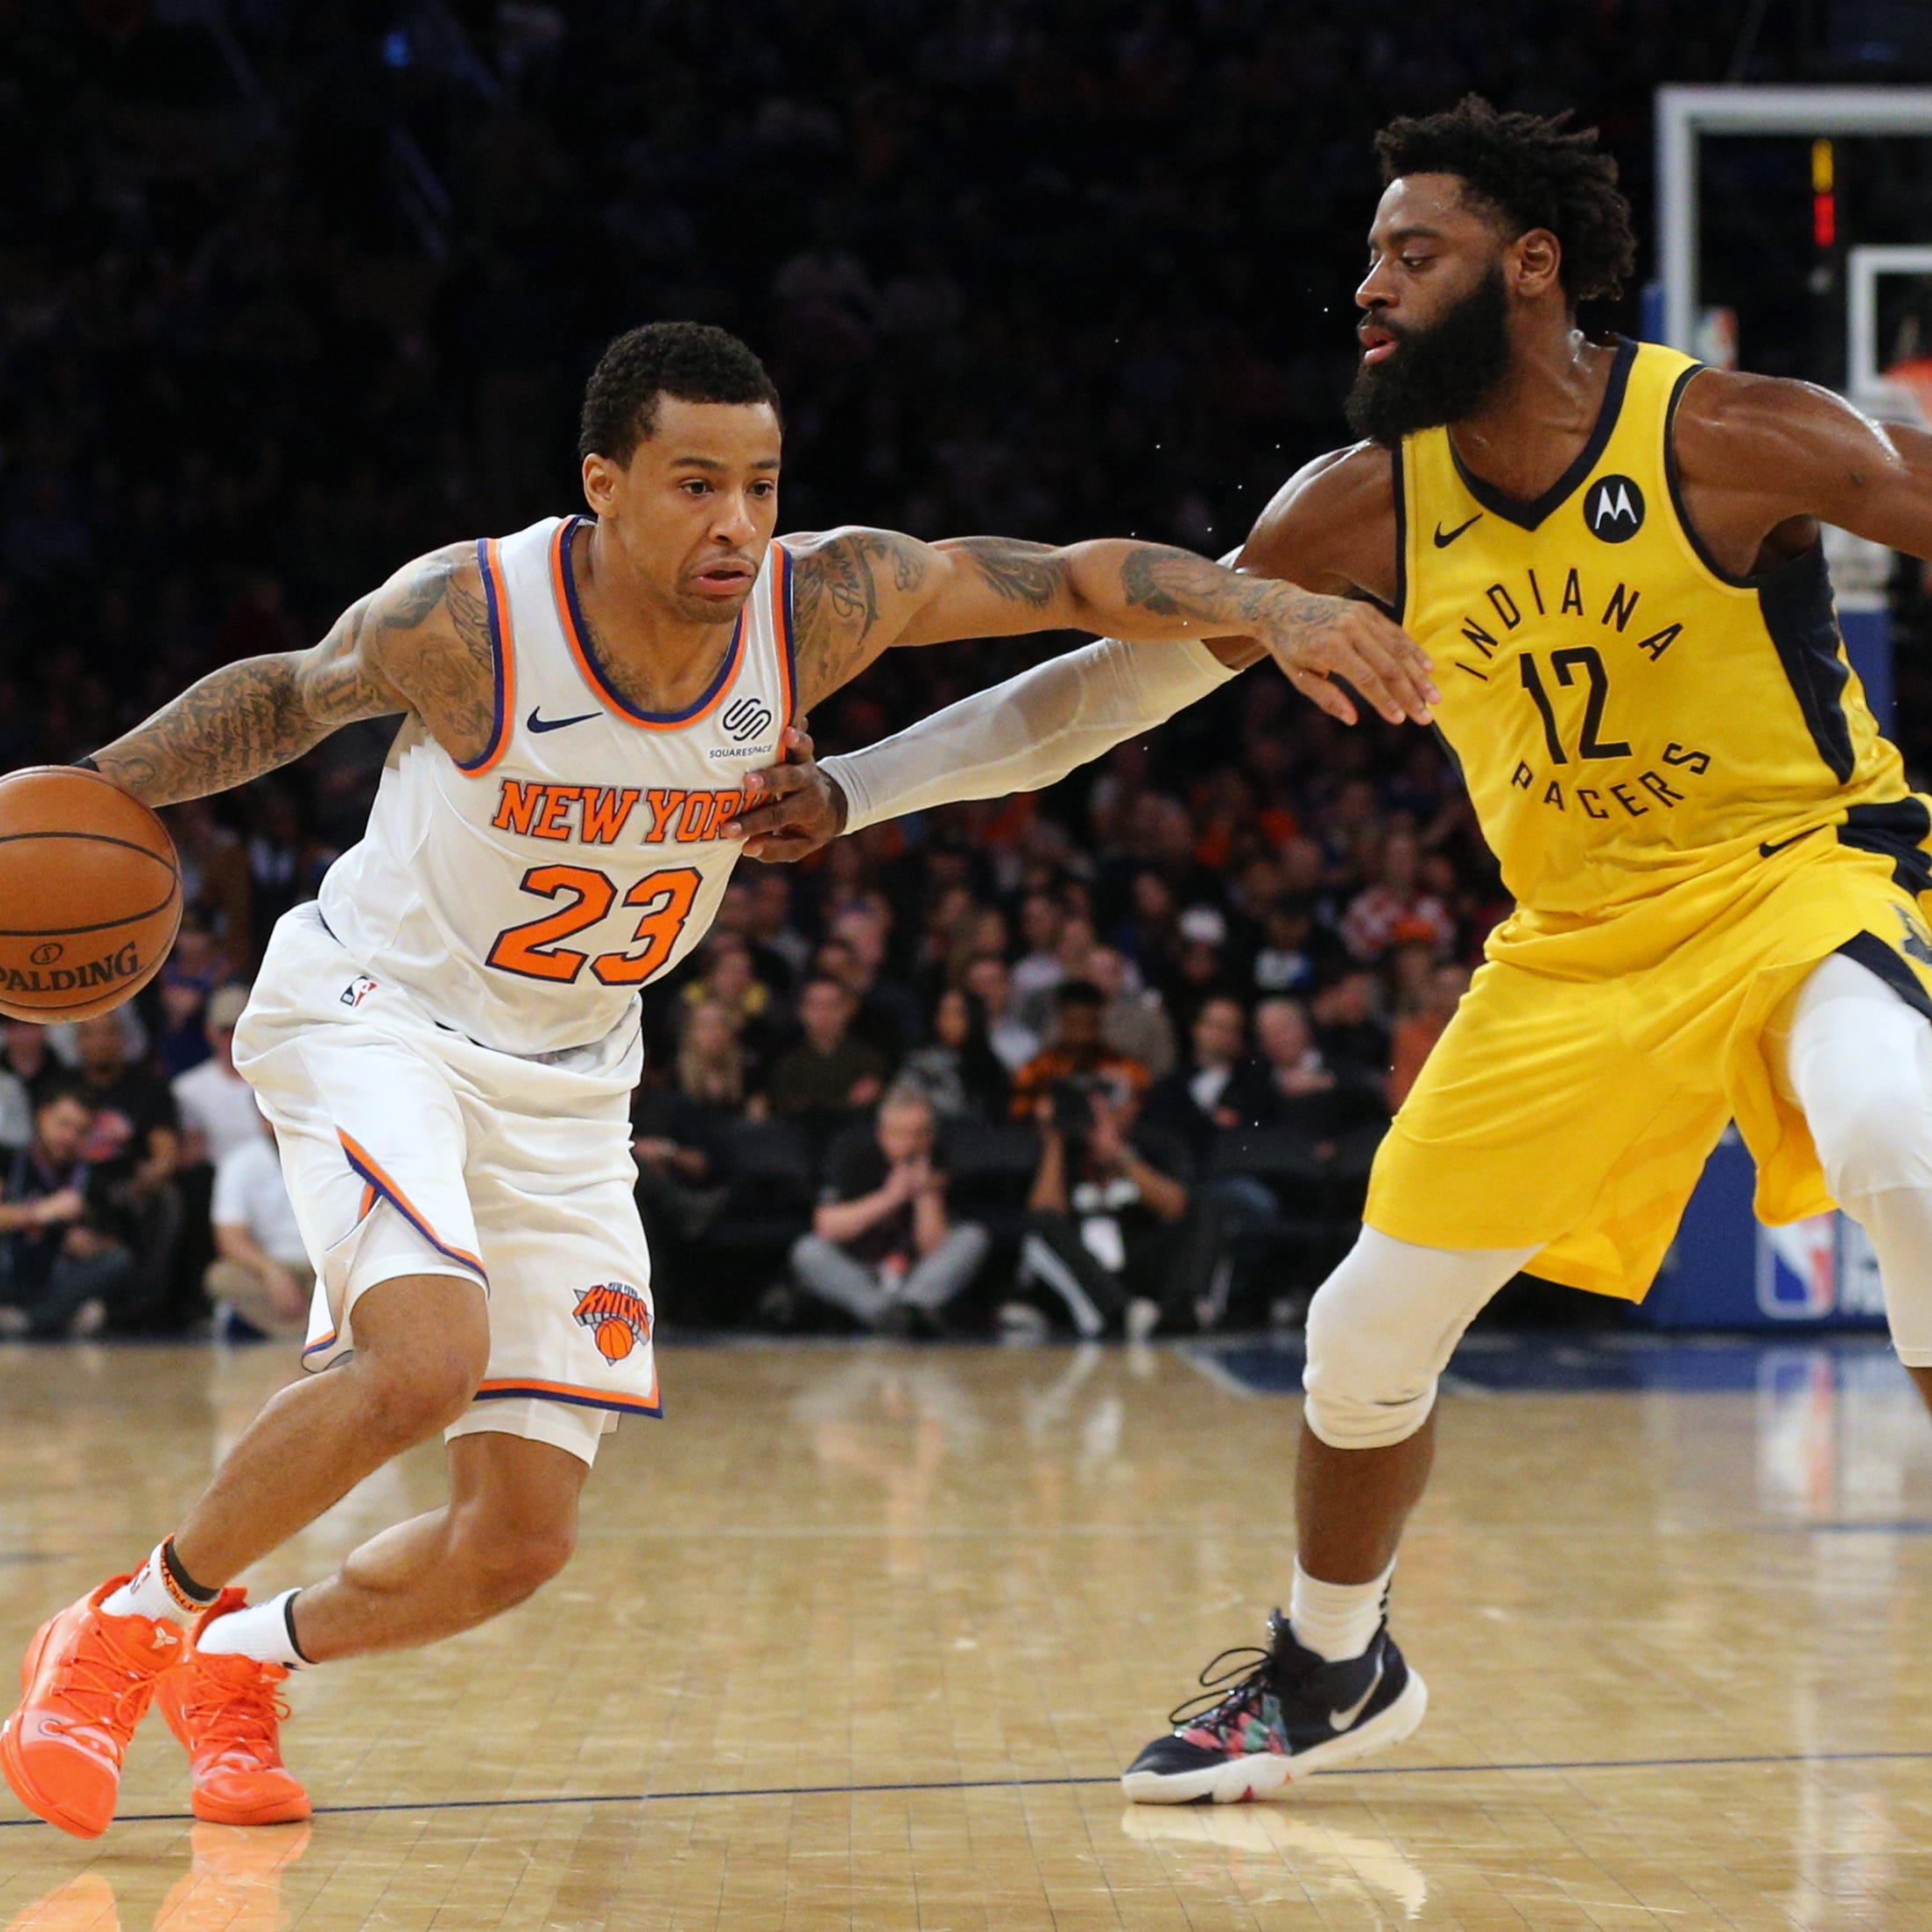 Pacers rebound to blast Knicks, end road trip on high note and with a winning record